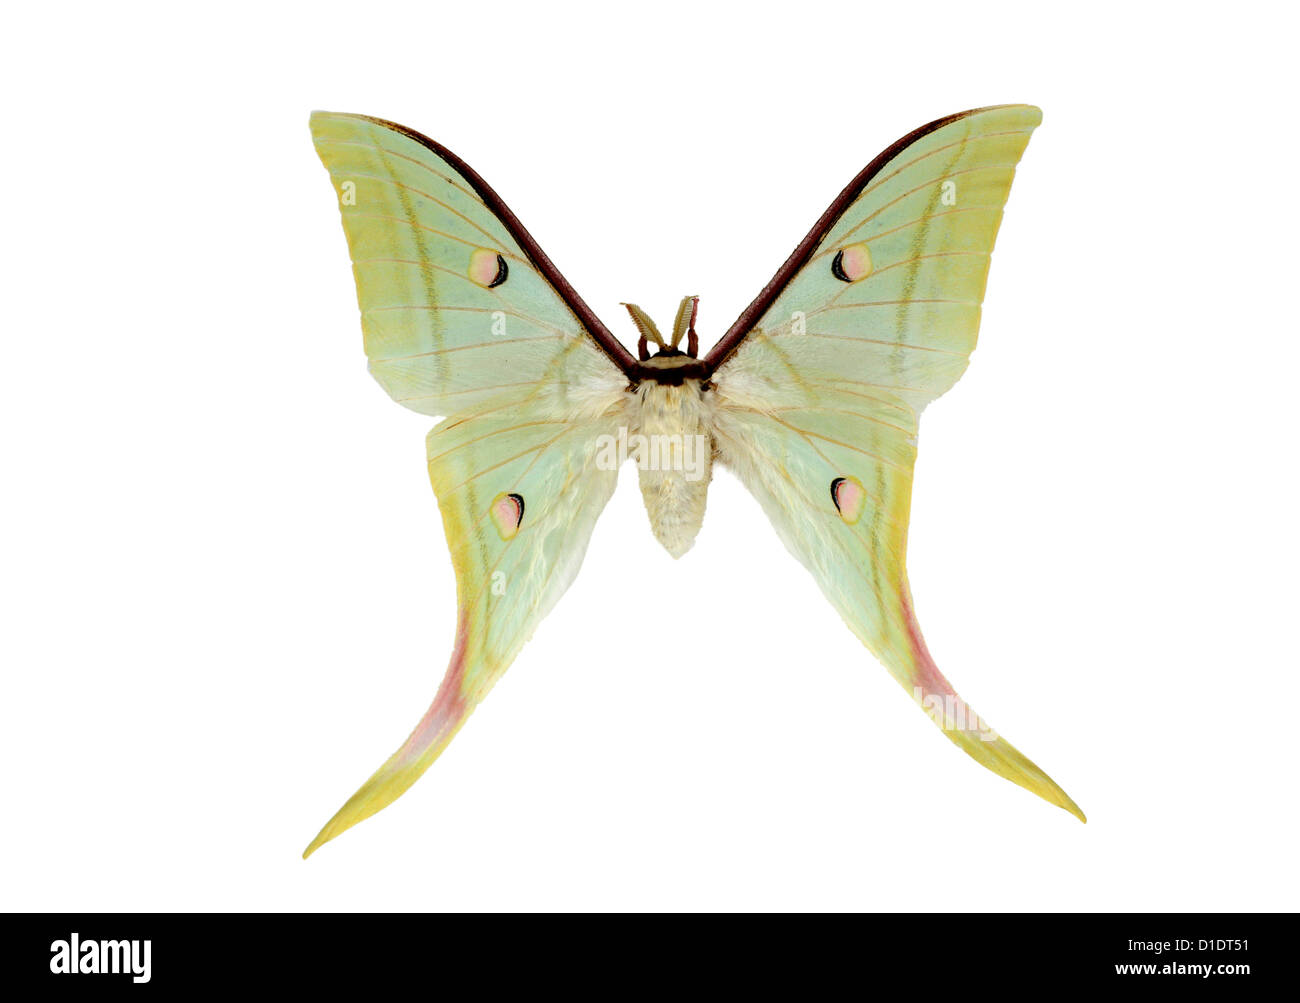 Indian Moon Moth Stock Photos & Indian Moon Moth Stock Images - Alamy